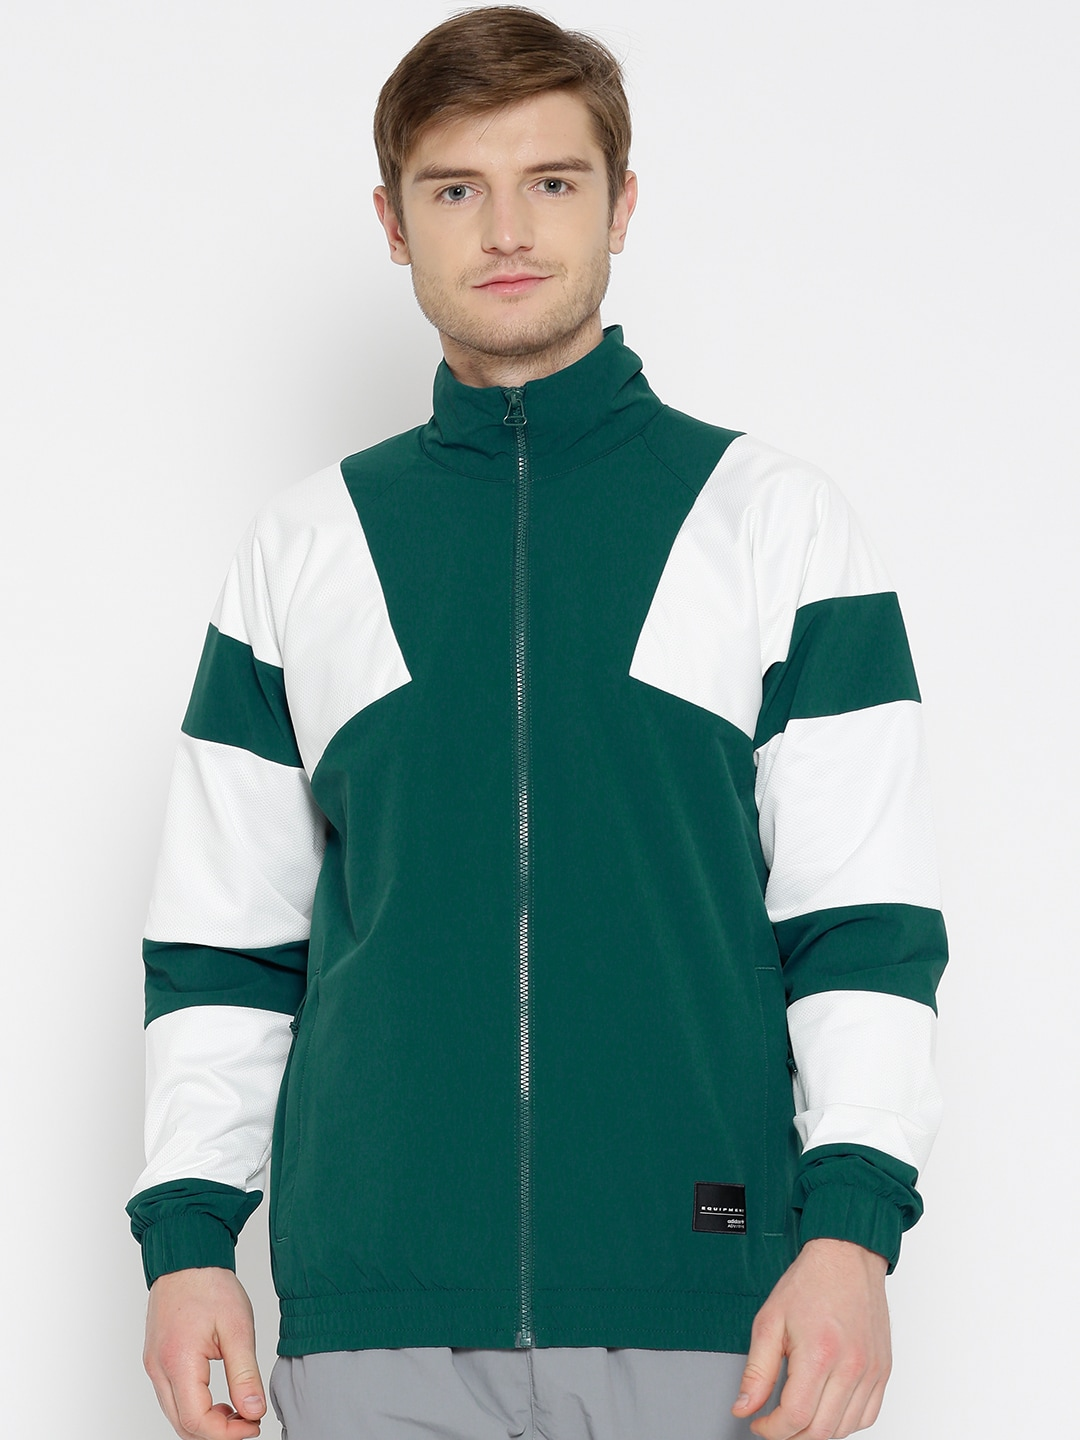 42a7608f98c9 Adidas Jacket Tracksuits - Buy Adidas Jacket Tracksuits online in India